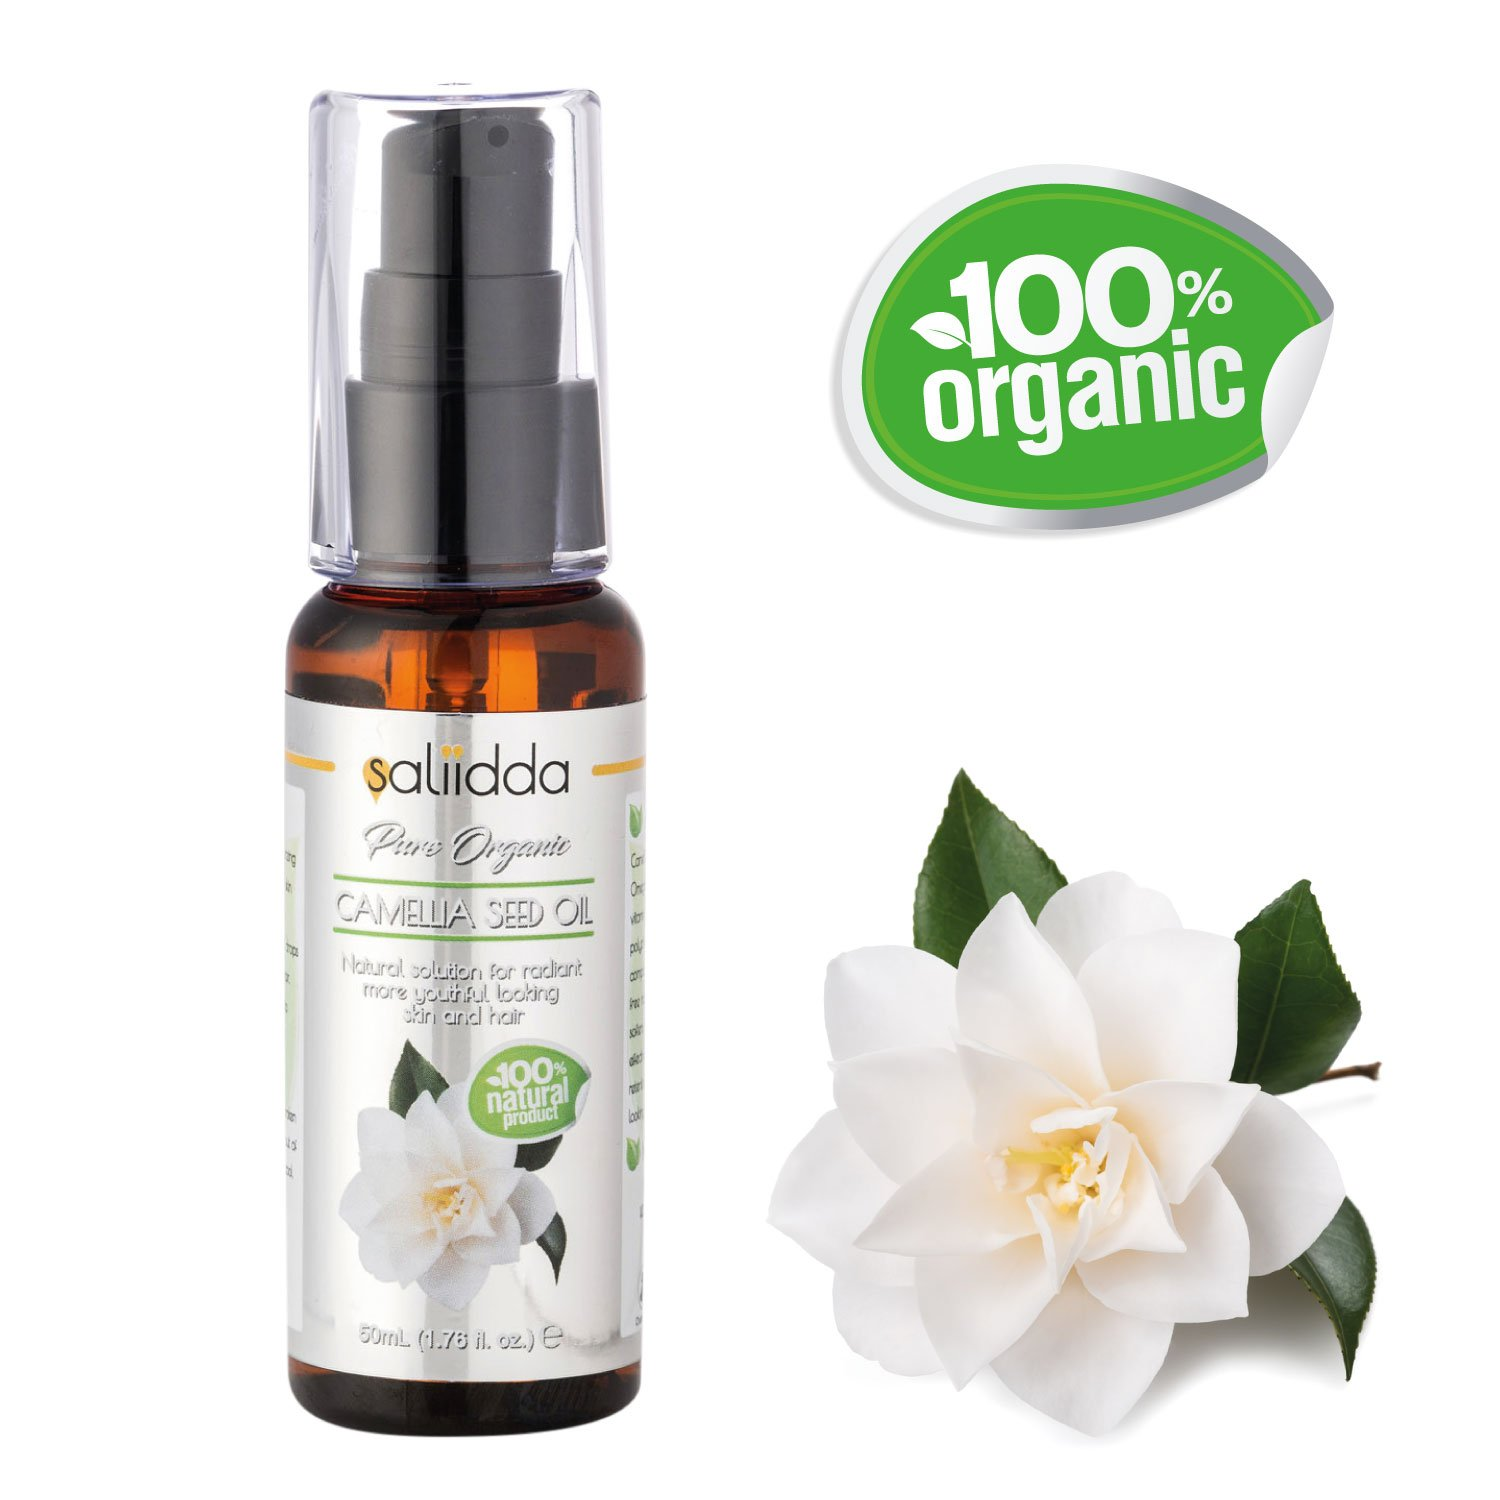 100% Pure ORGANIC CAMELLIA Seed Oil - 100% Natural - Solution For Radiant Youthful Skin Coils Media Ltd